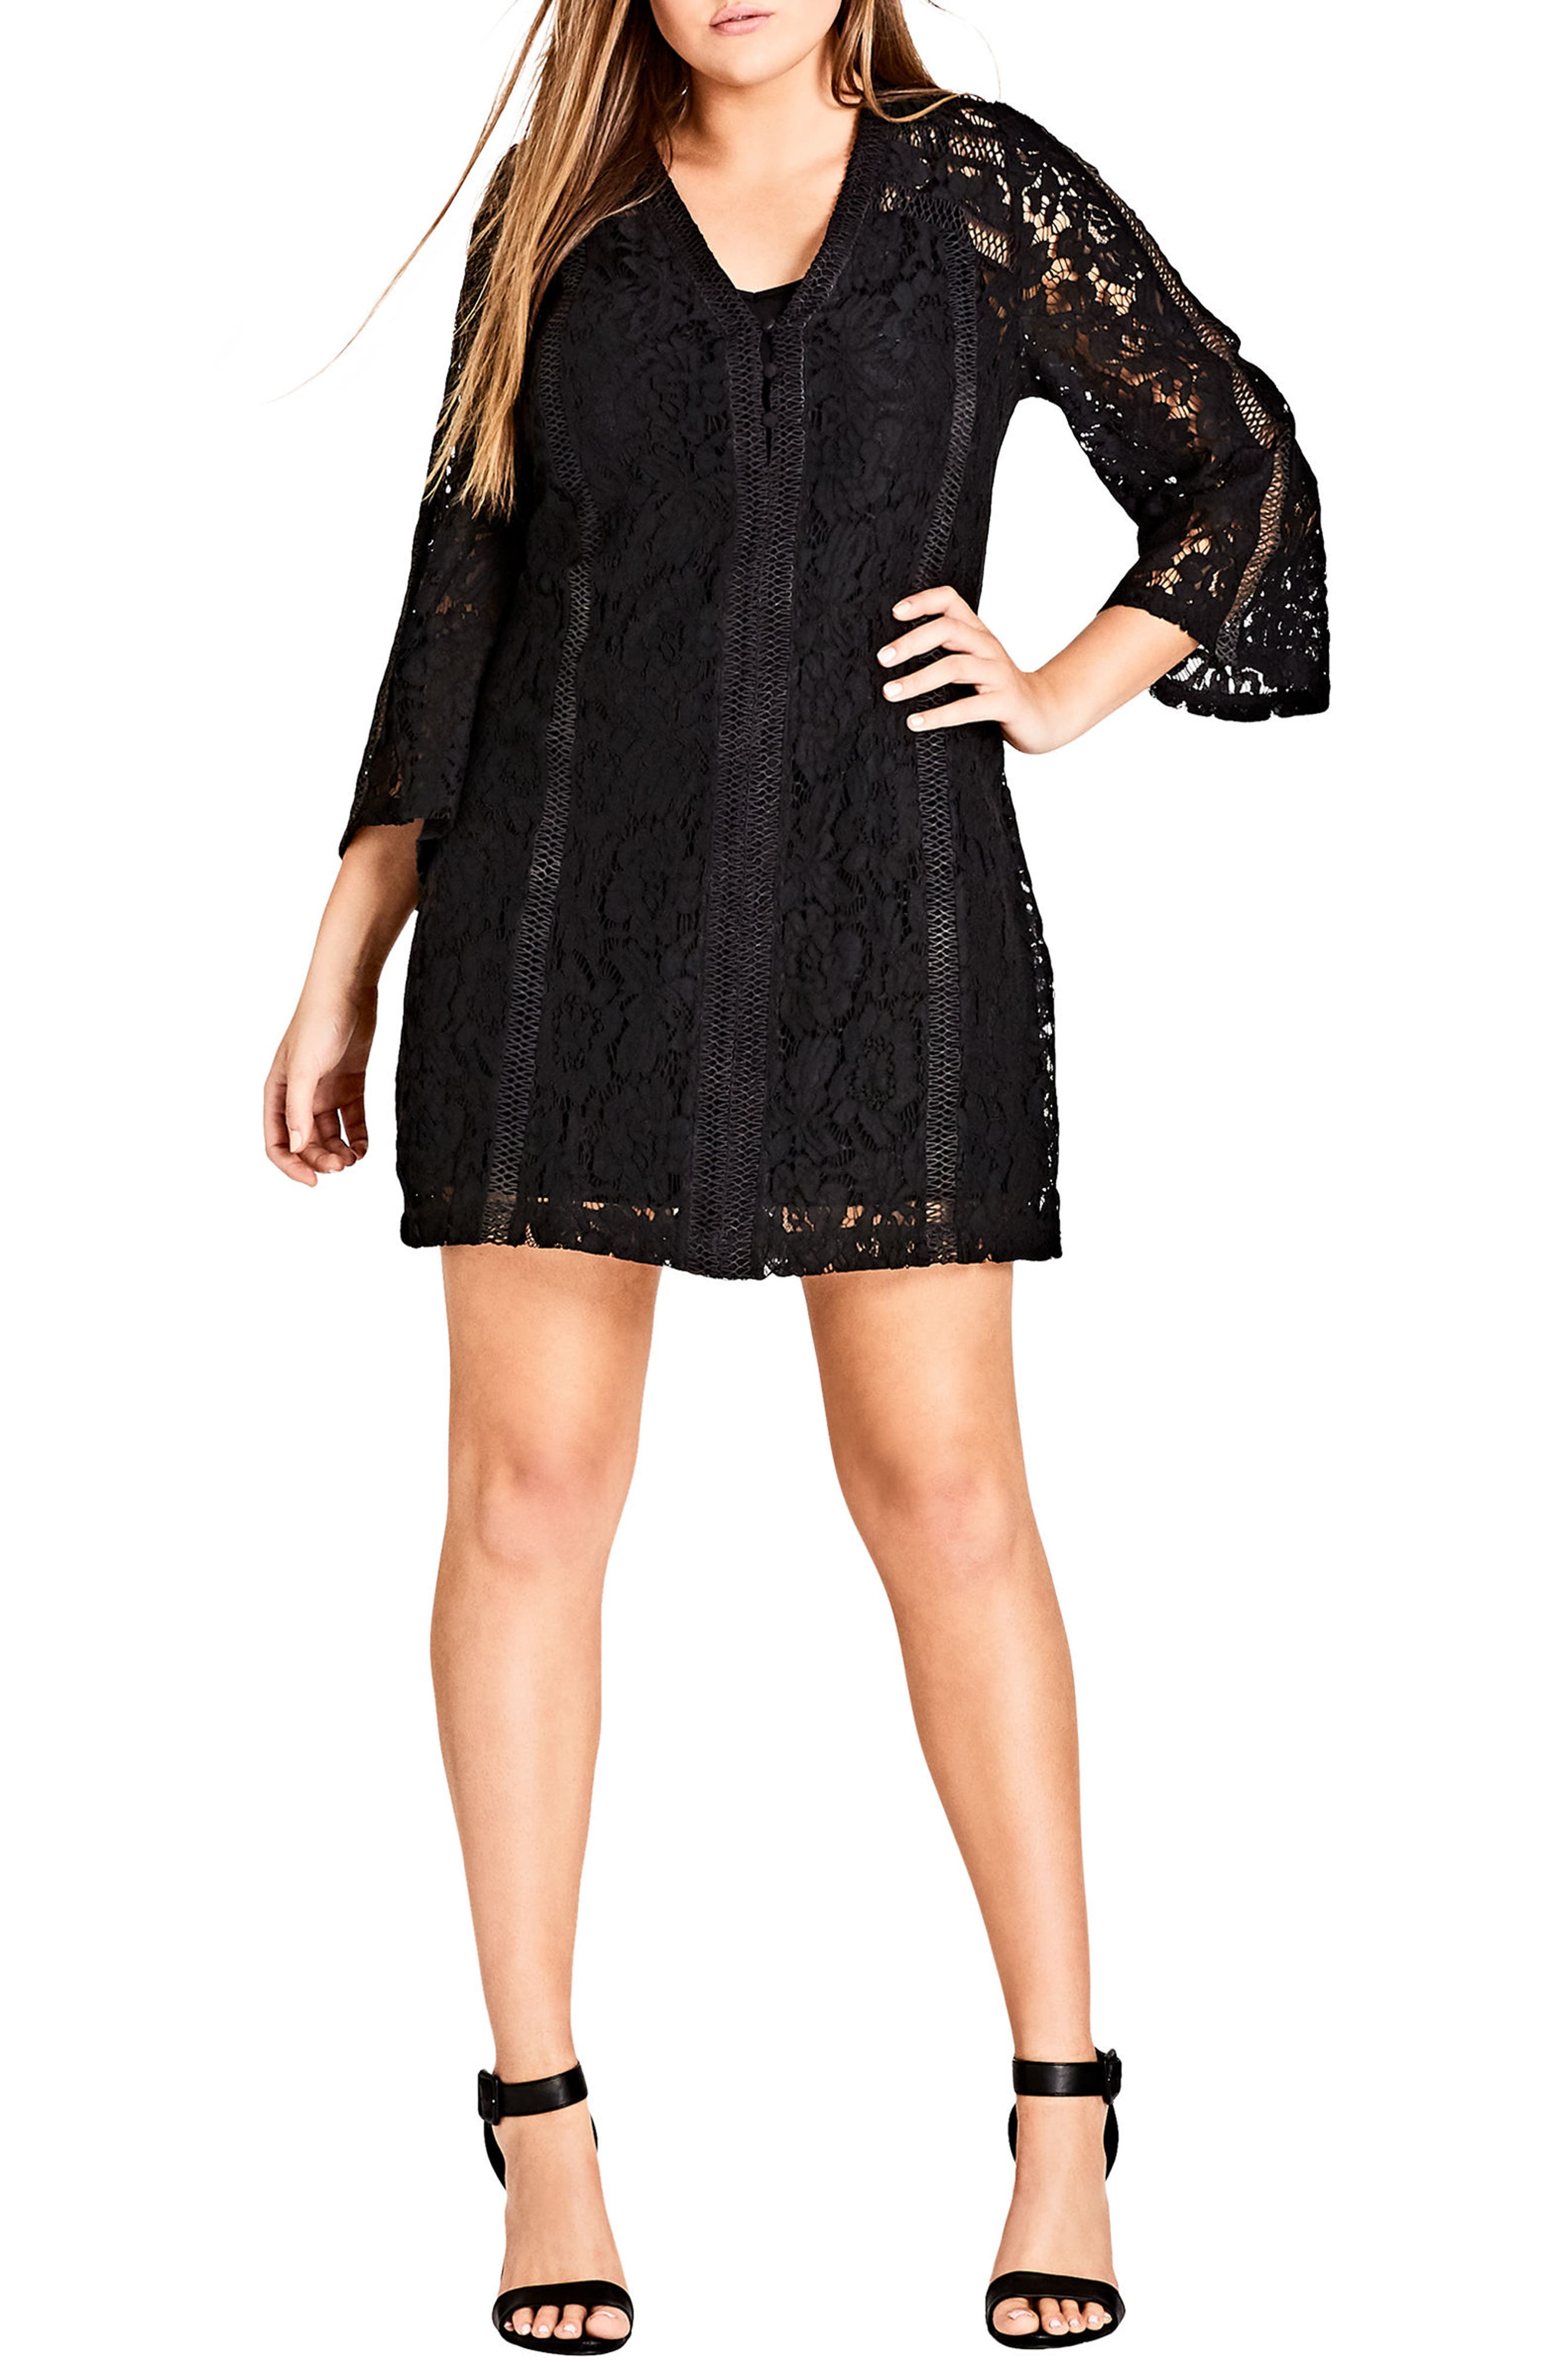 Alternate Image 1 Selected - City Chic Innocent Lace Shift Dress (Plus Size)